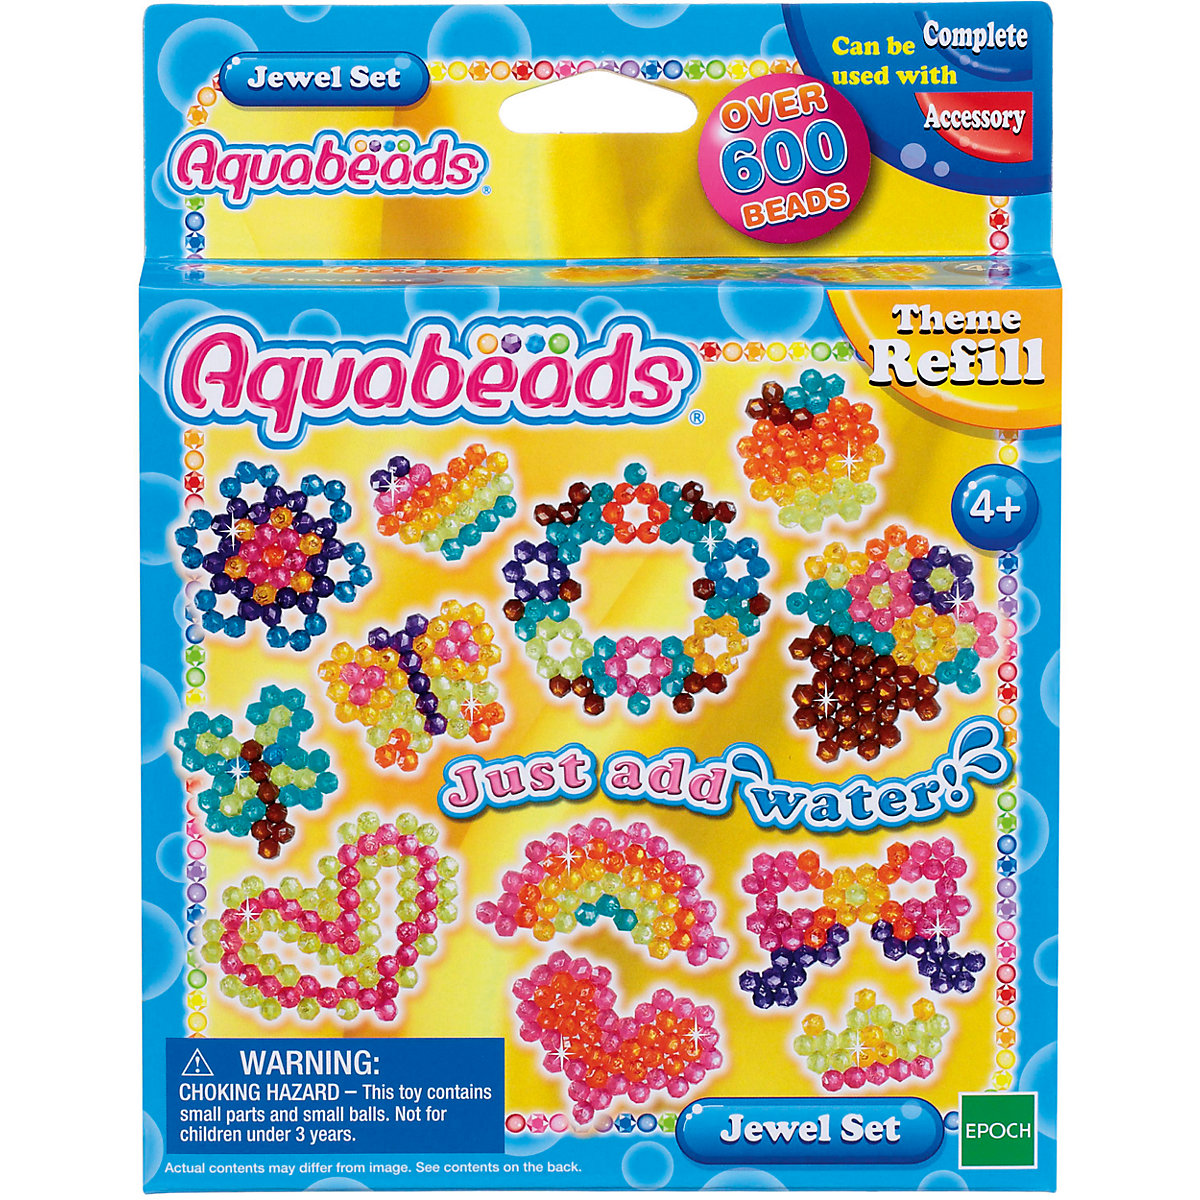 Aquabeads Beads Toys 7240120 Creativity Needlework For Children Set Kids Toy Hobbis Arts Crafts DIY